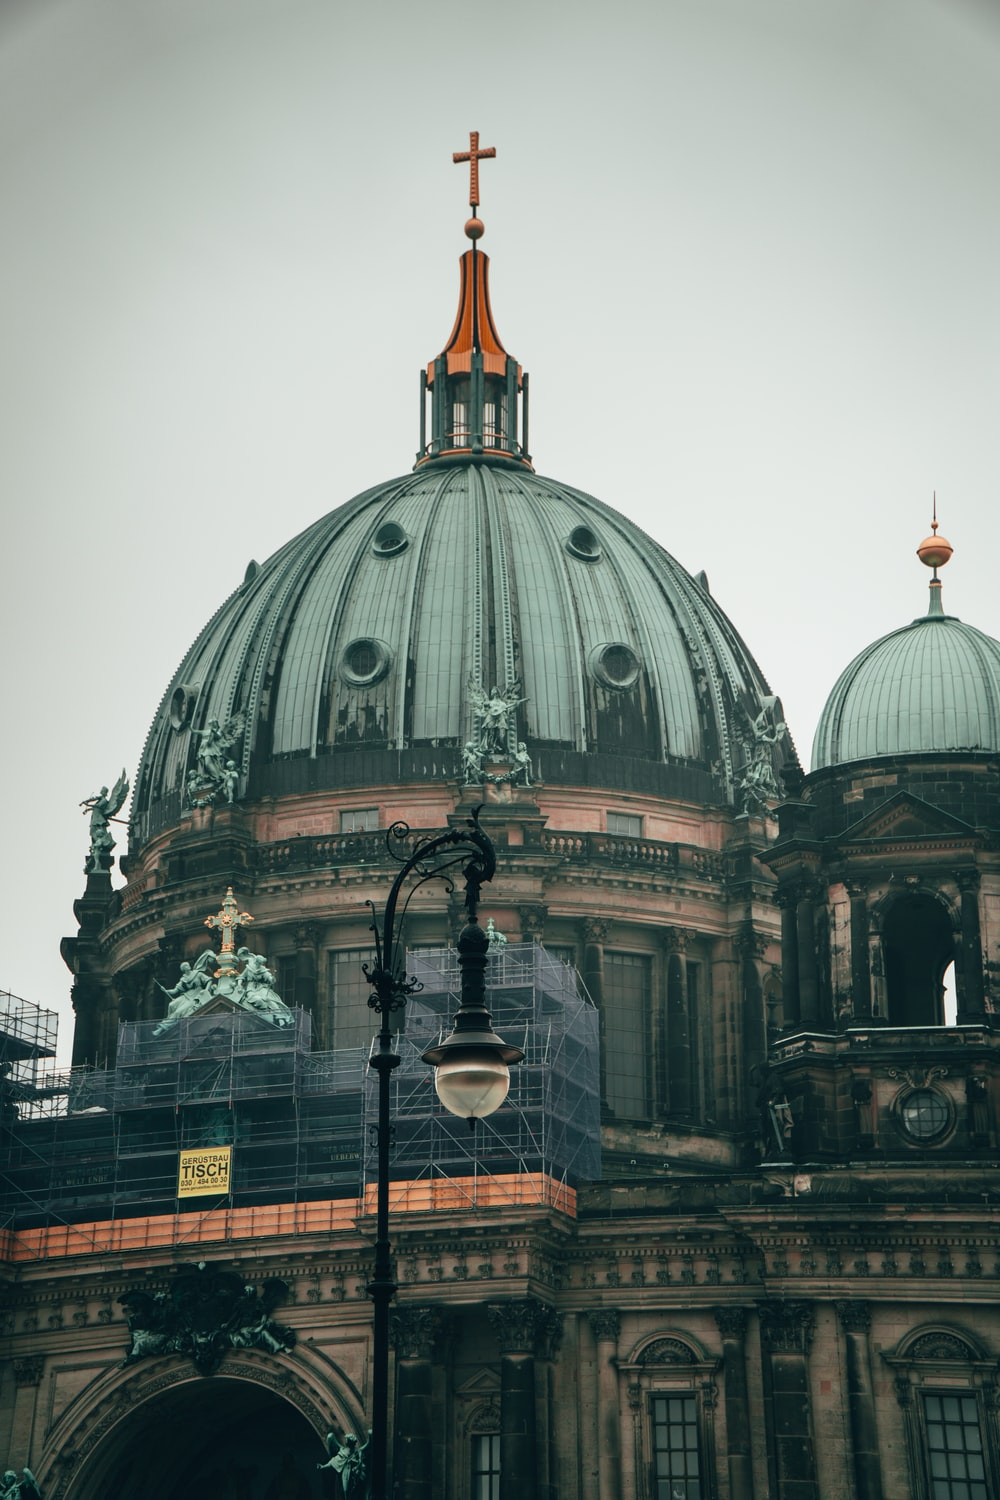 brown and white dome building